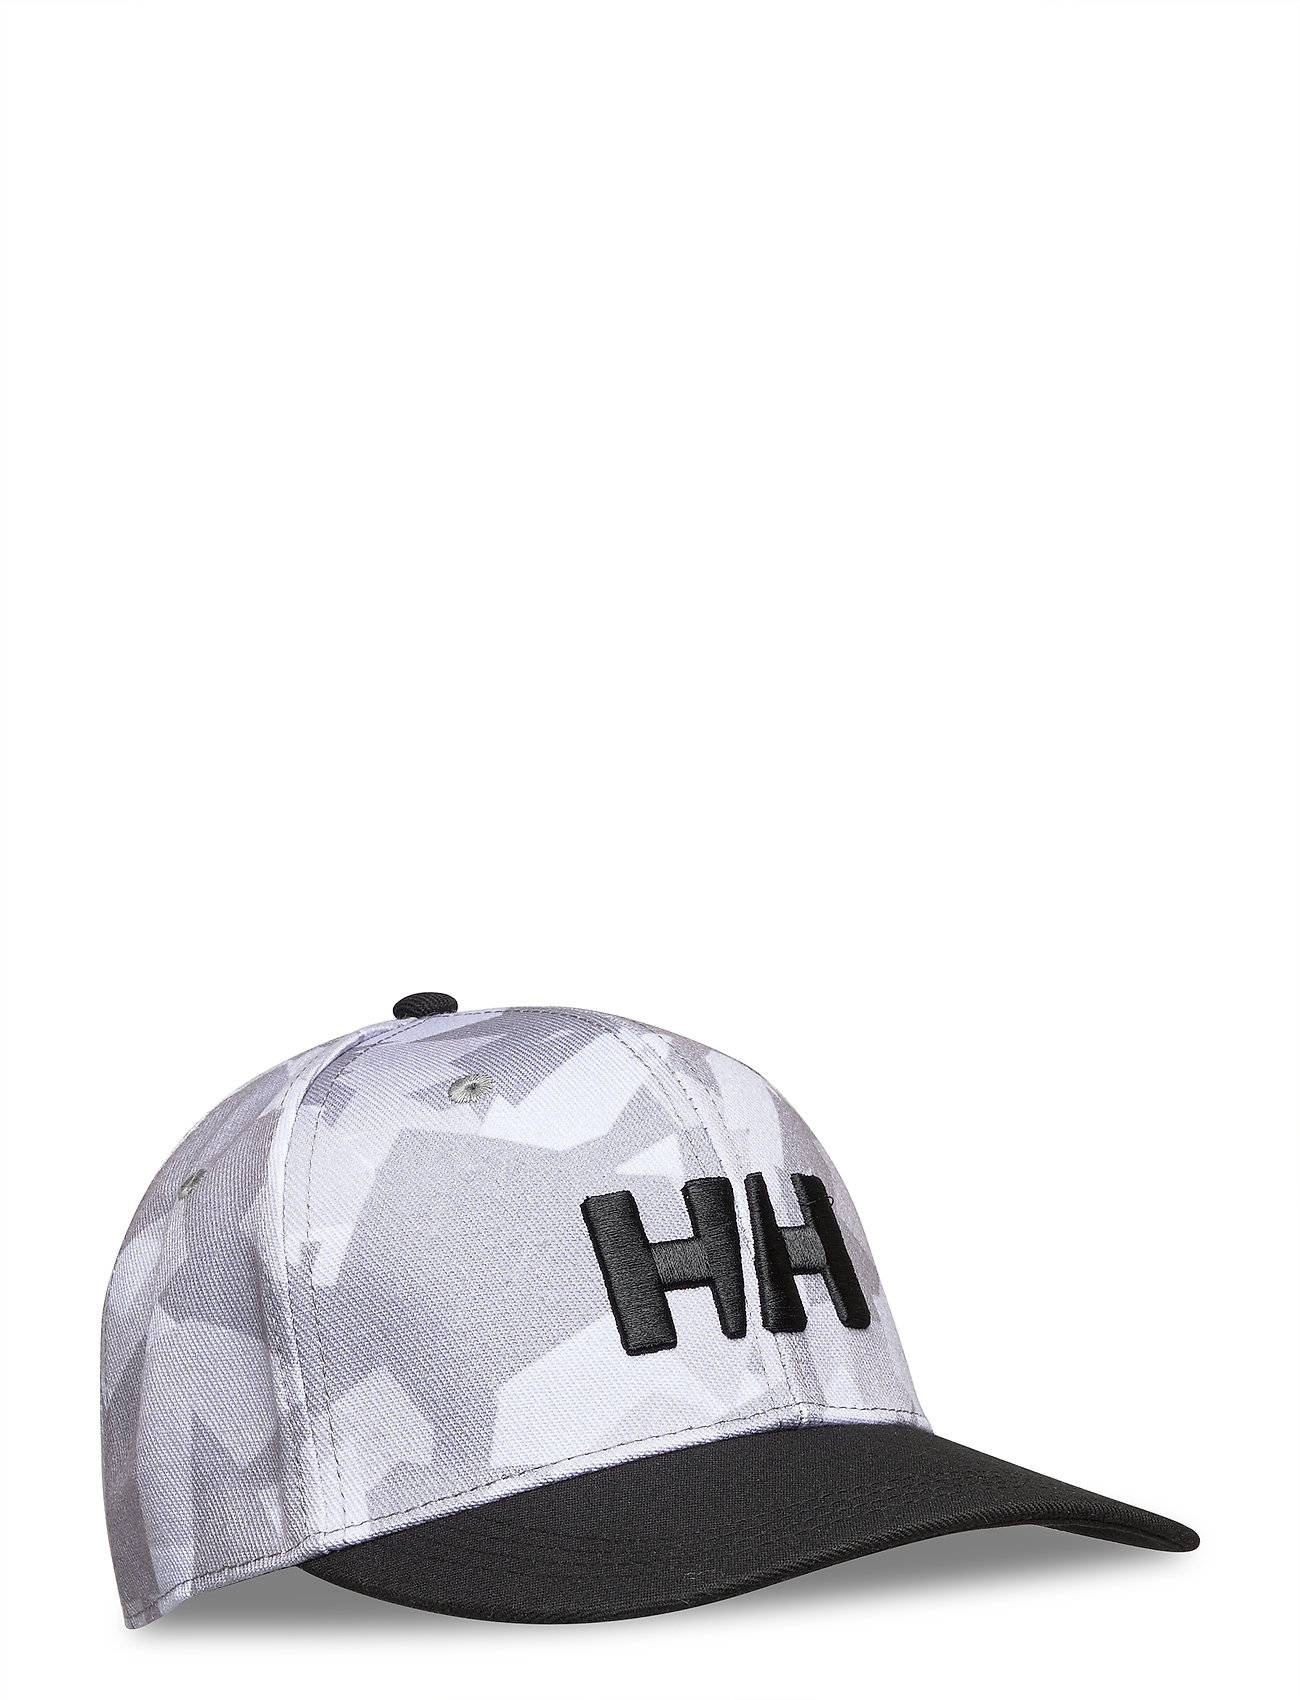 Helly Hansen Hh Brand Cap Accessories Headwear Caps Harmaa